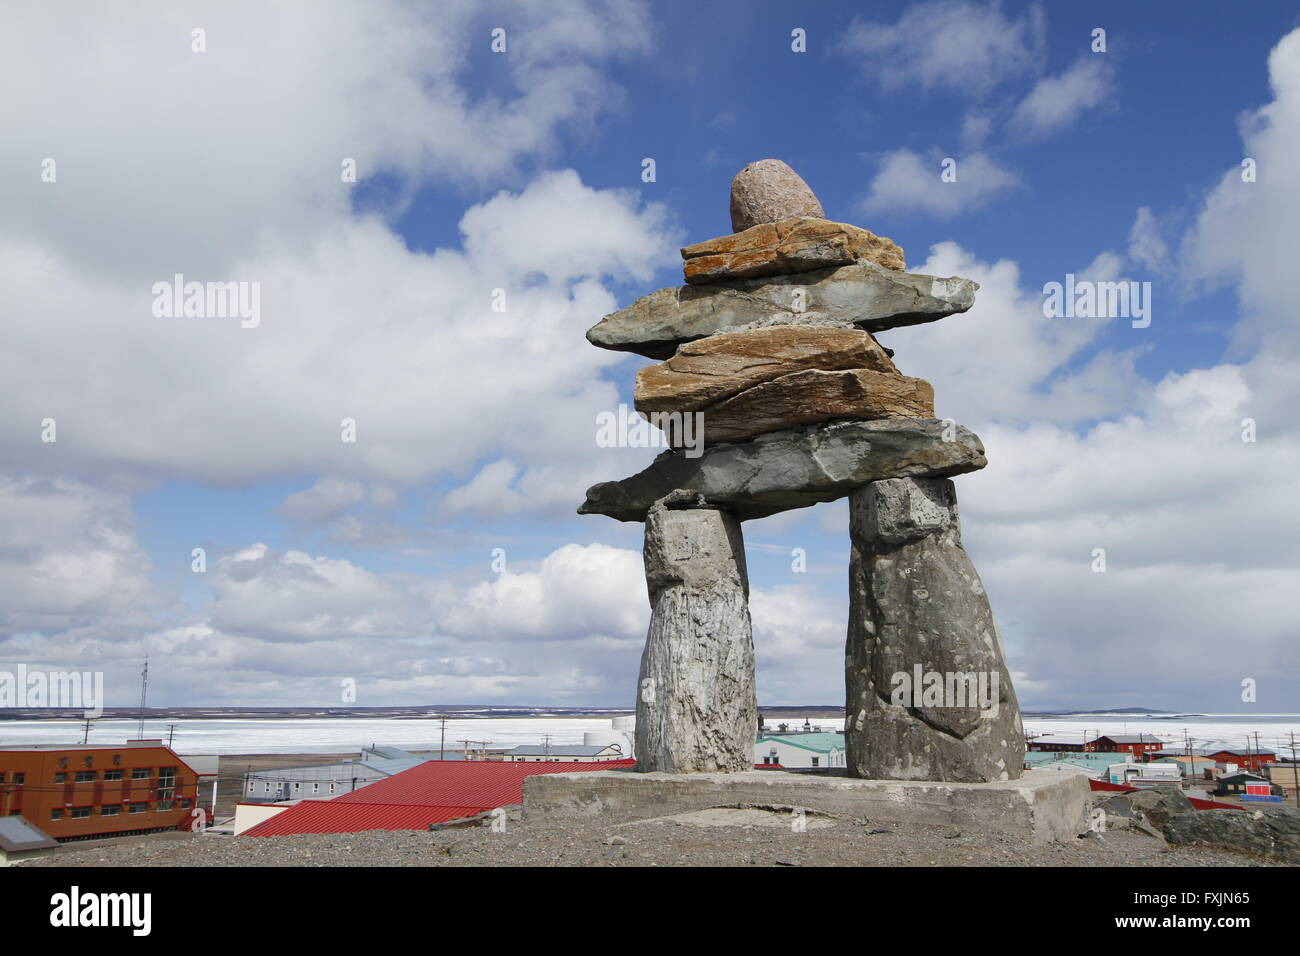 Inukshuk (or Inuksuk) at top of the hill in the community of Rankin Inlet, Nunavut near Hudson Bay, Canada Stock Photo